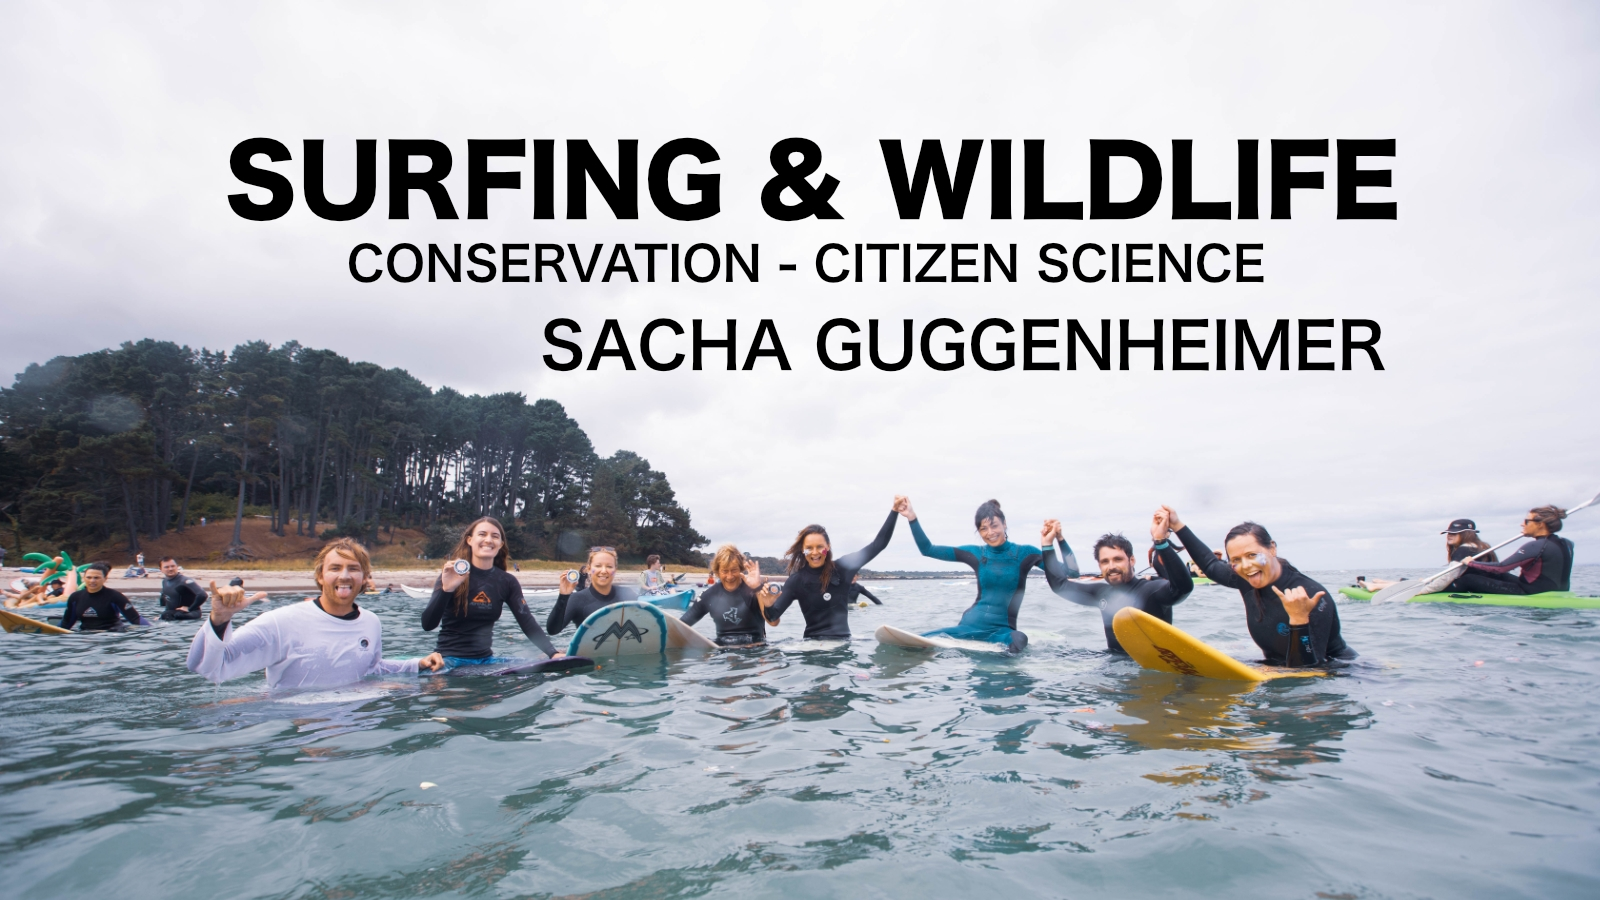 Surfing and wildlife: Supporting conservation through citizen science